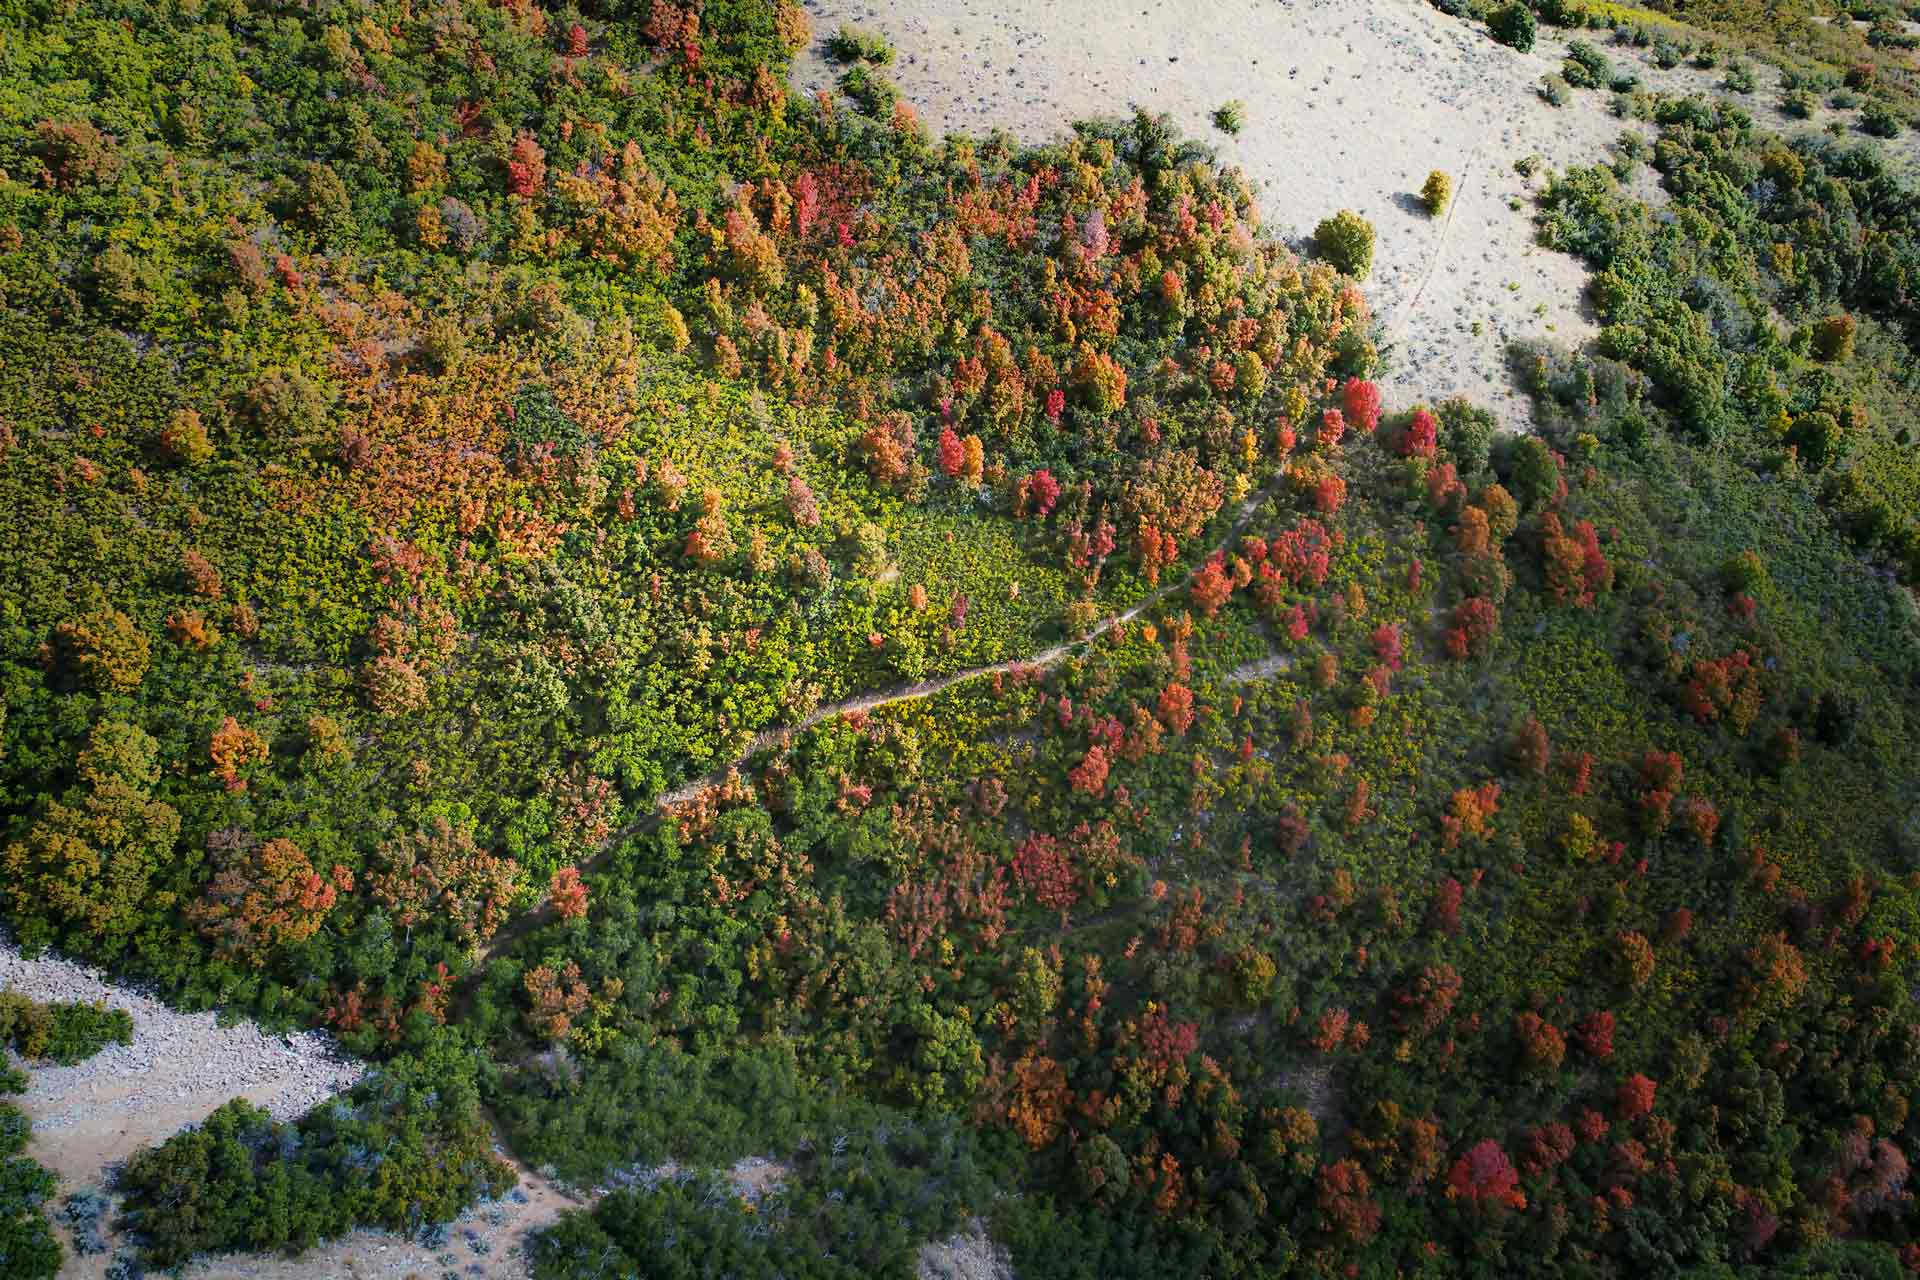 Overhead view looking straight down over fall forest